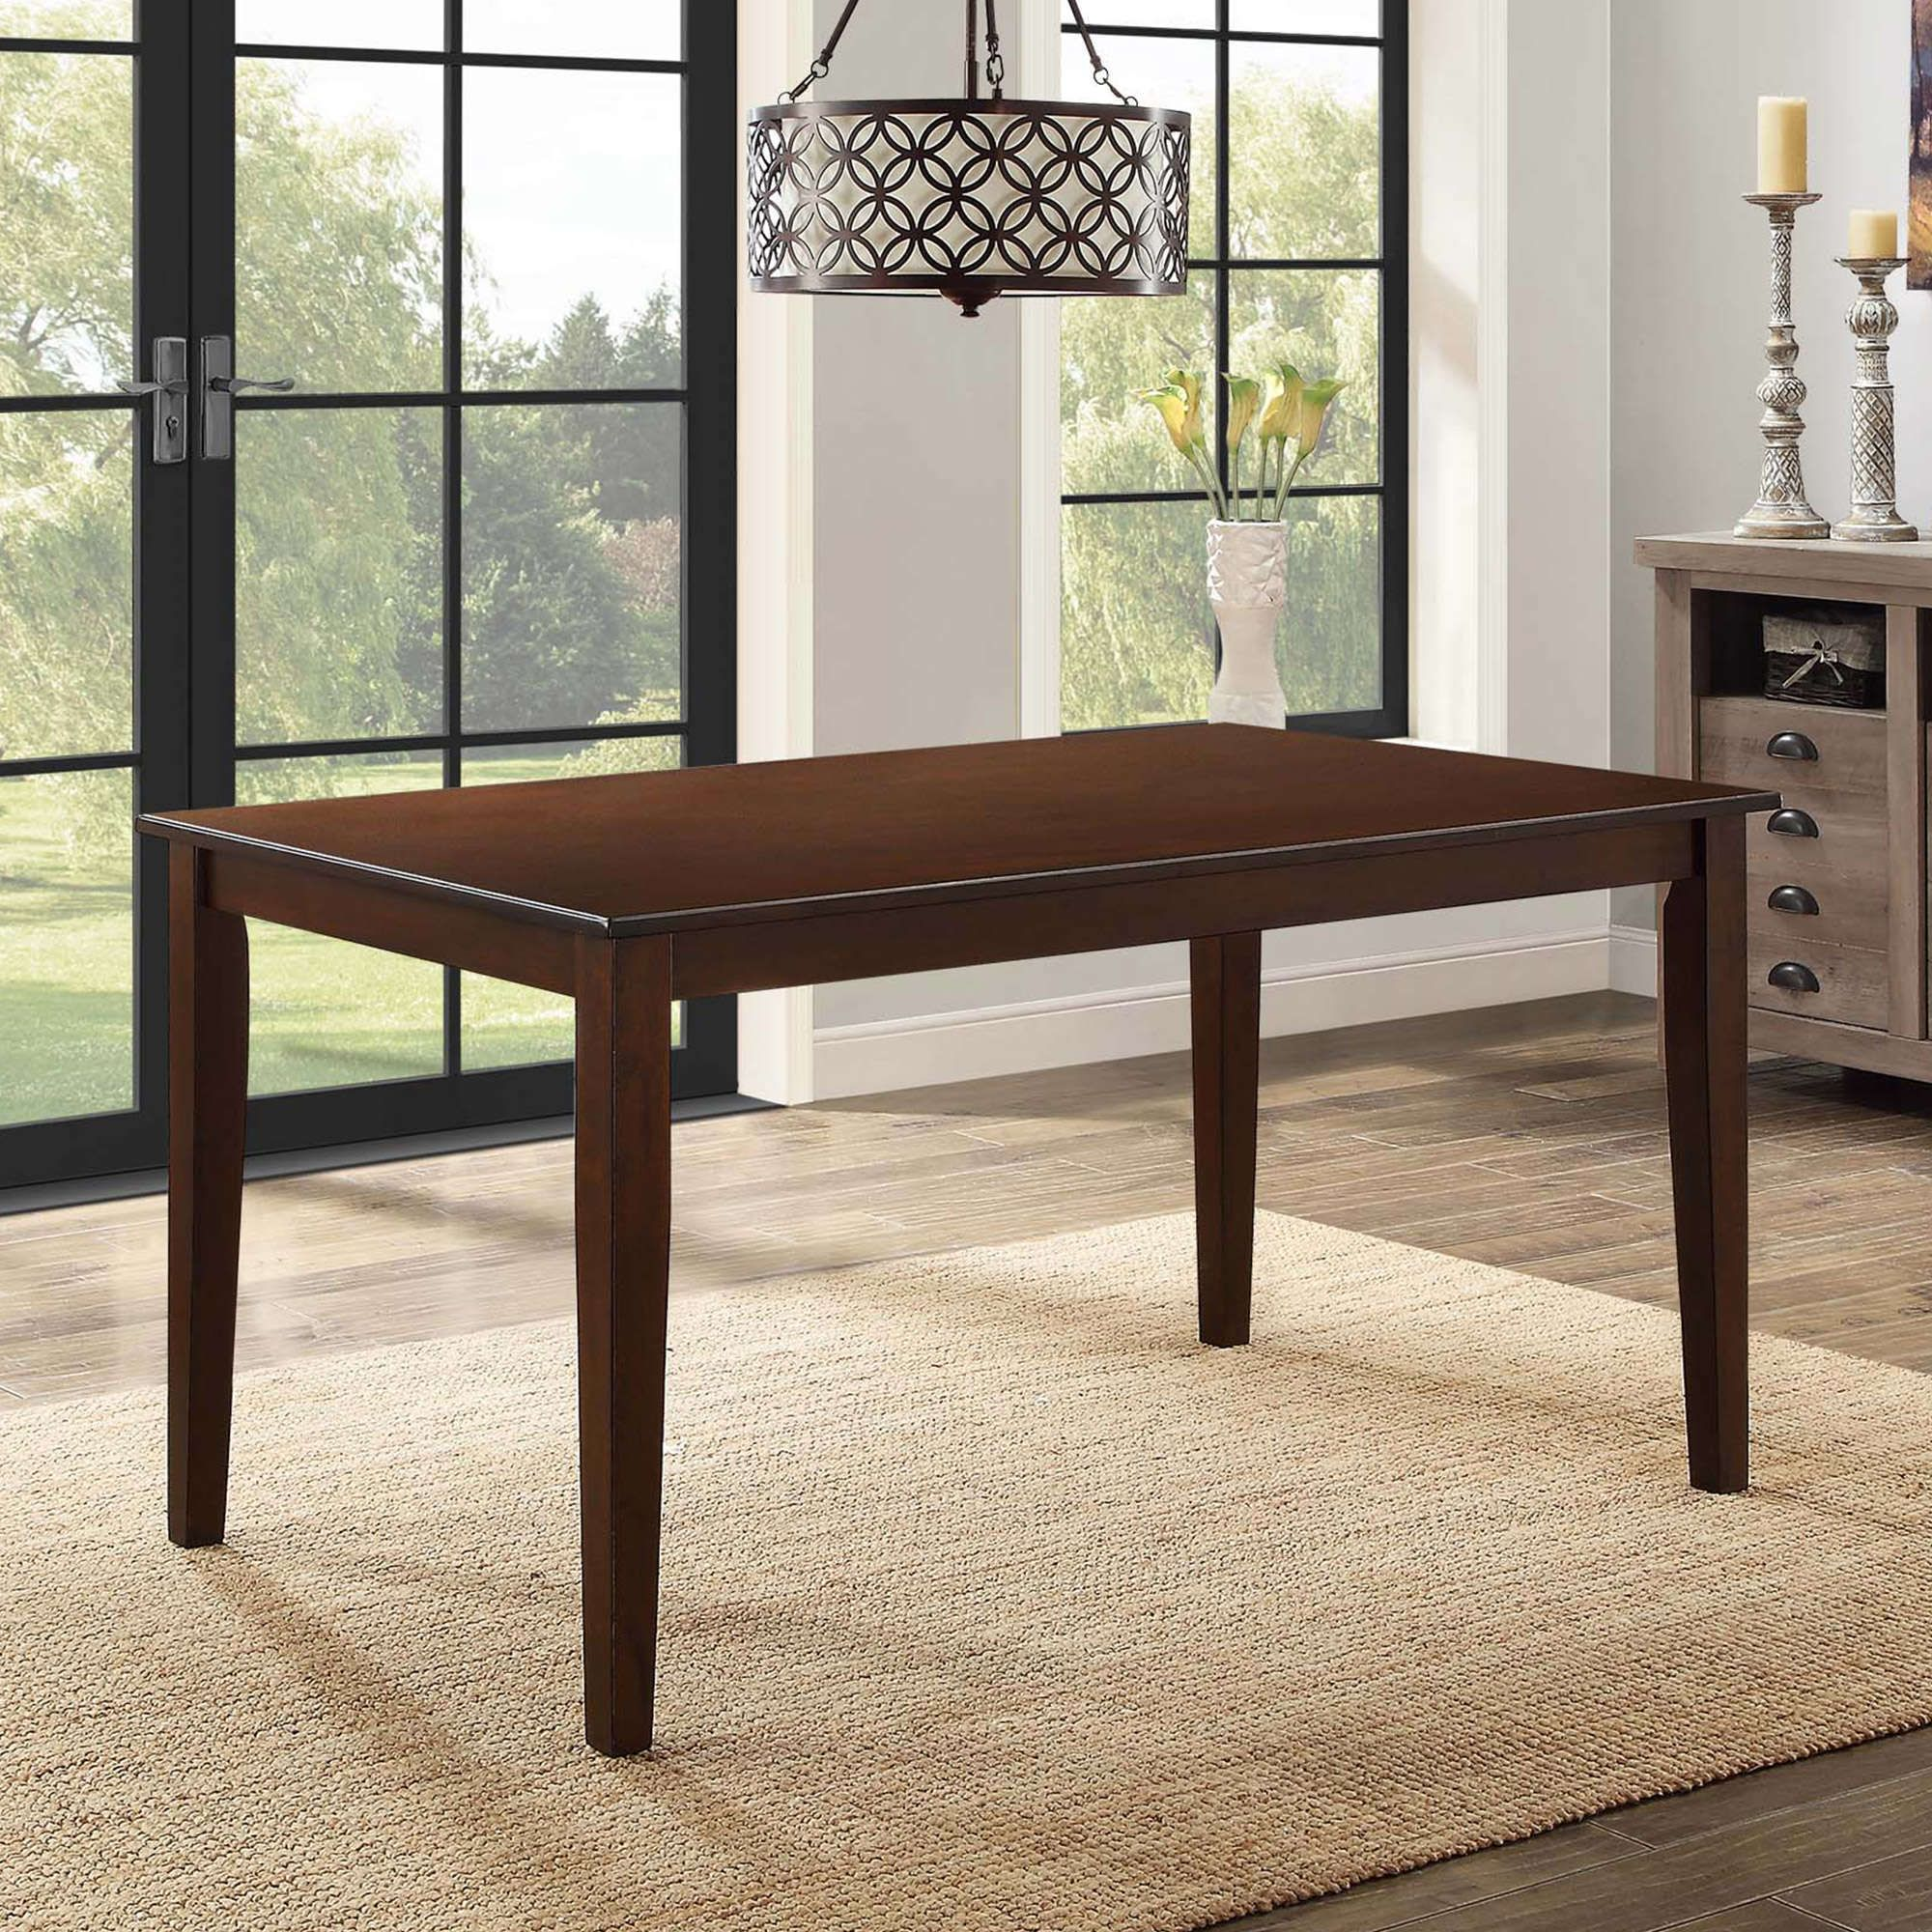 Free 2 Day Shipping Buy Better Homes And Gardens Bankston Dining